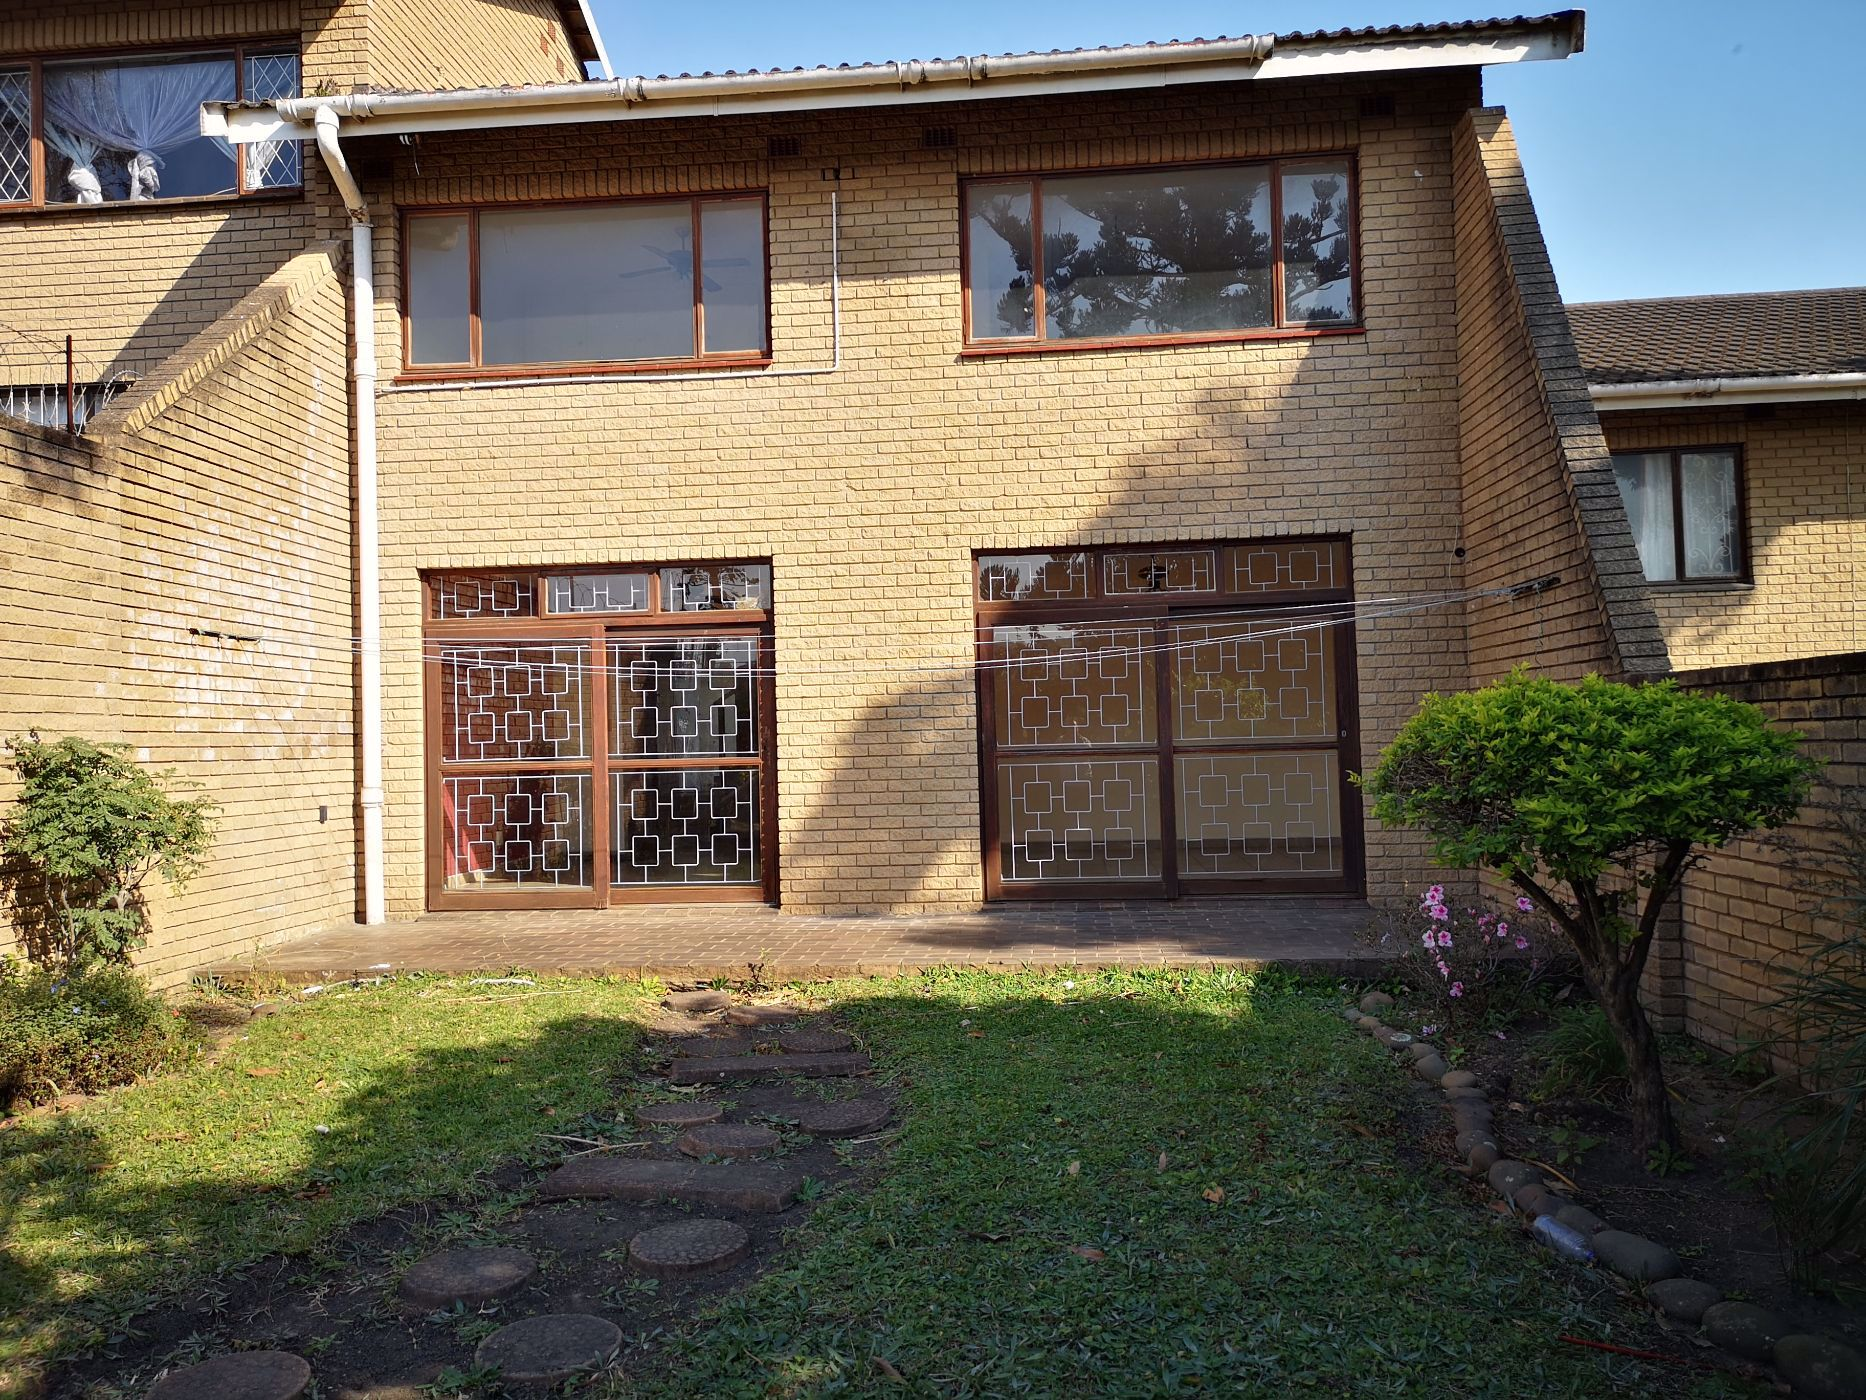 3 bedroom double-storey apartment for sale in Marburg